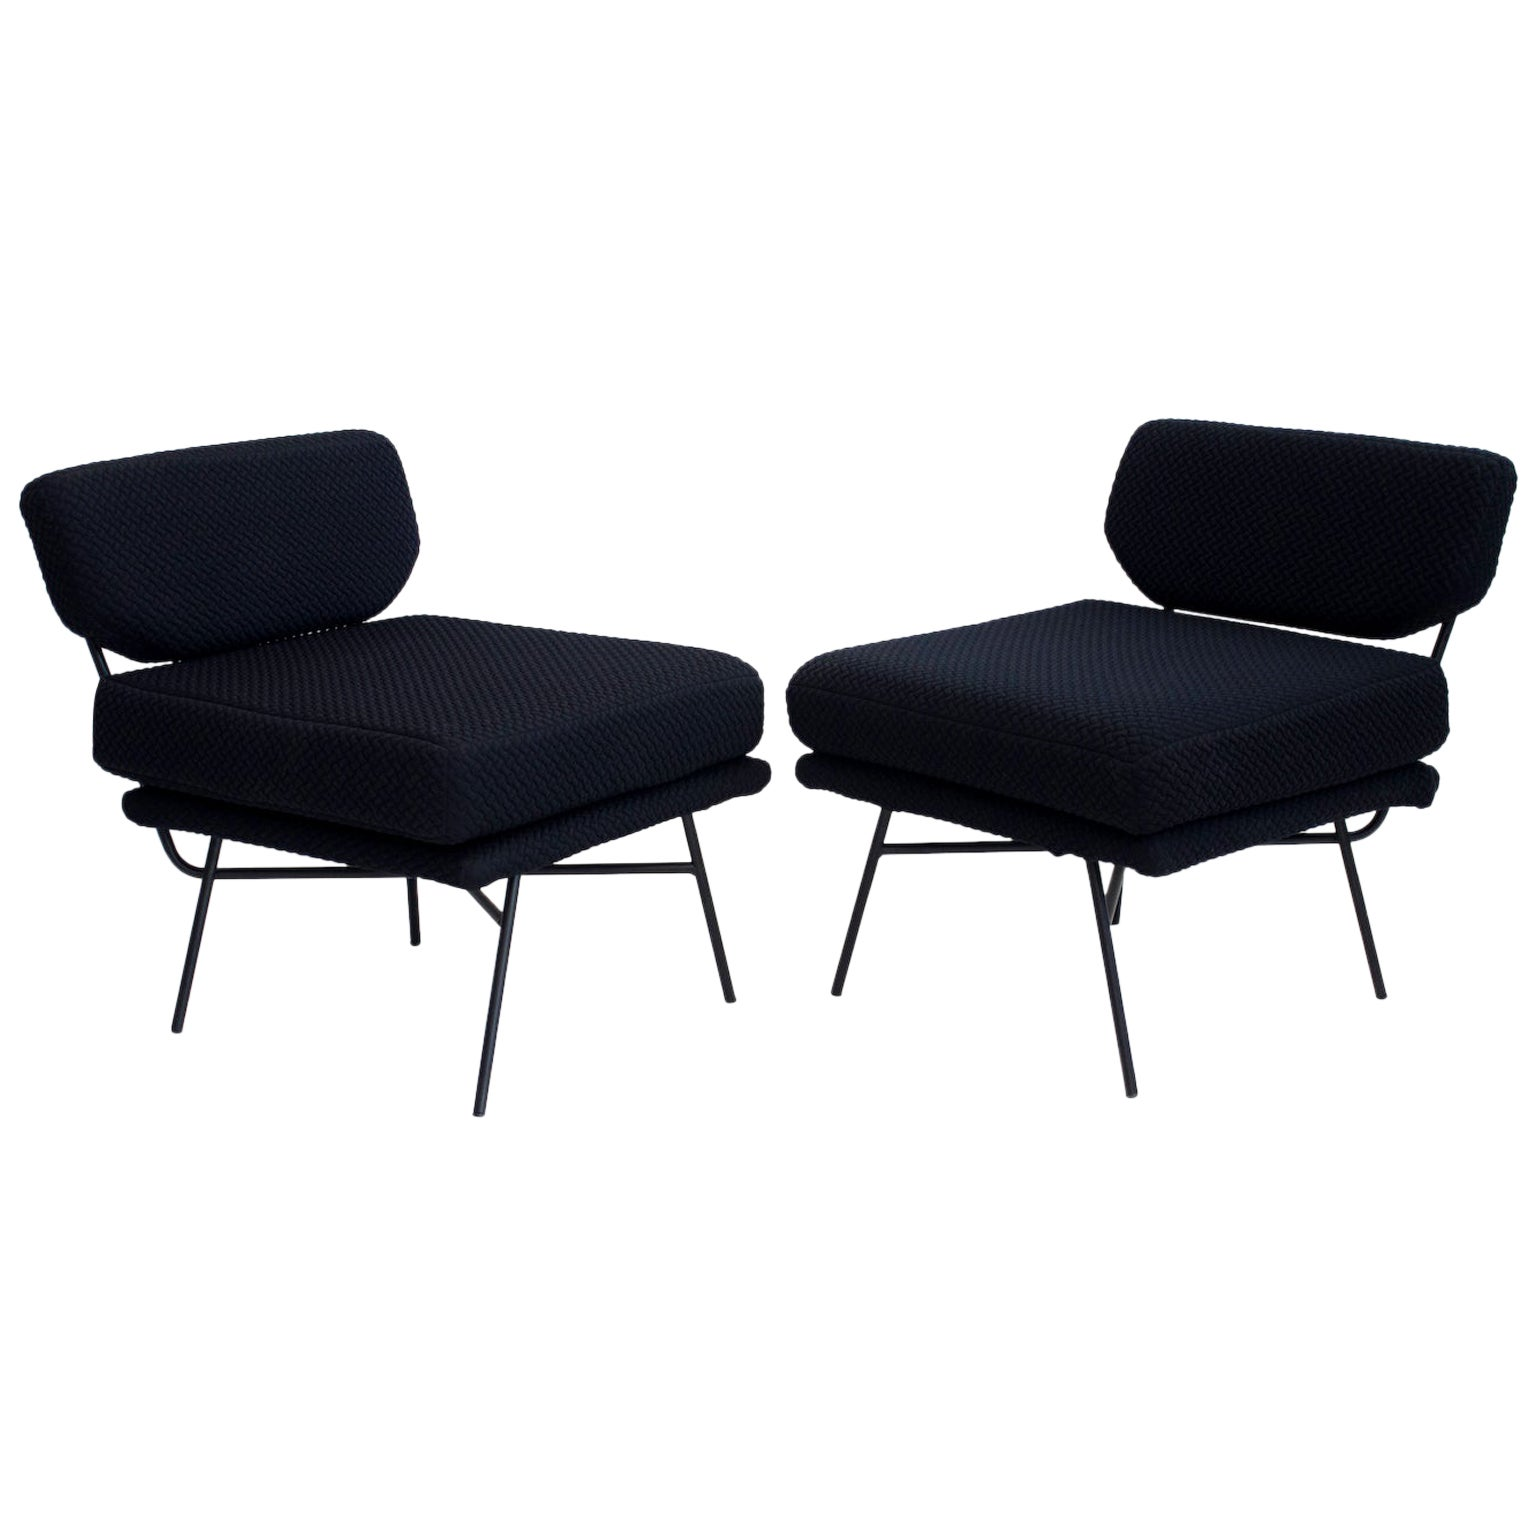 Pair of Elettra Lounge Chairs by Arflex